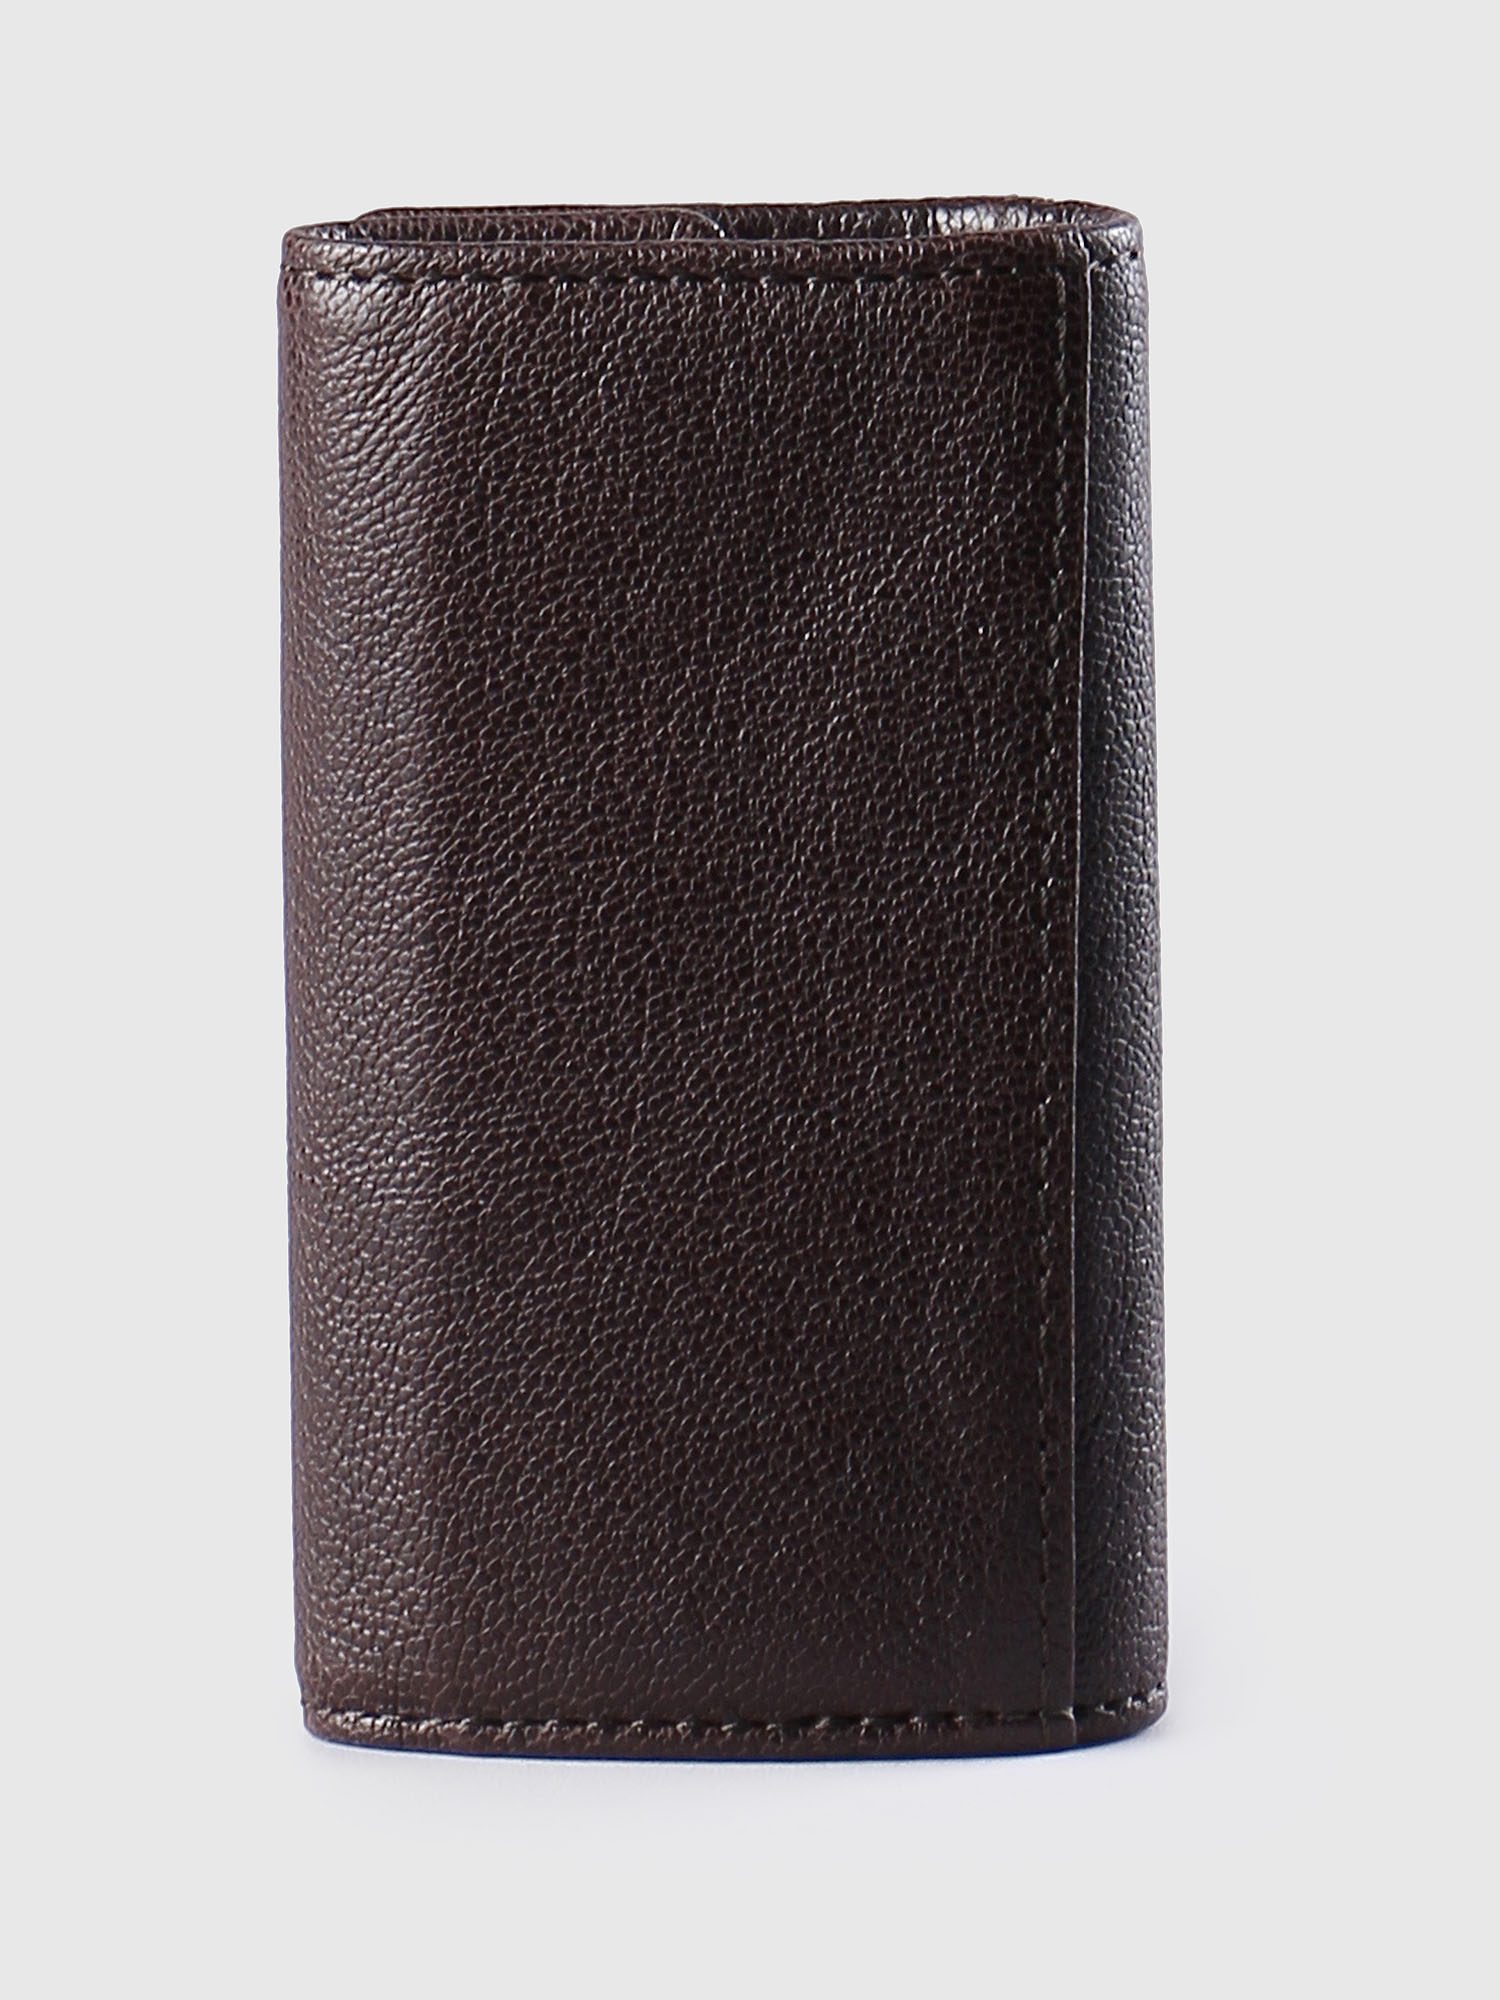 Diesel - KEYCASE O,  - Bijoux and Gadgets - Image 2